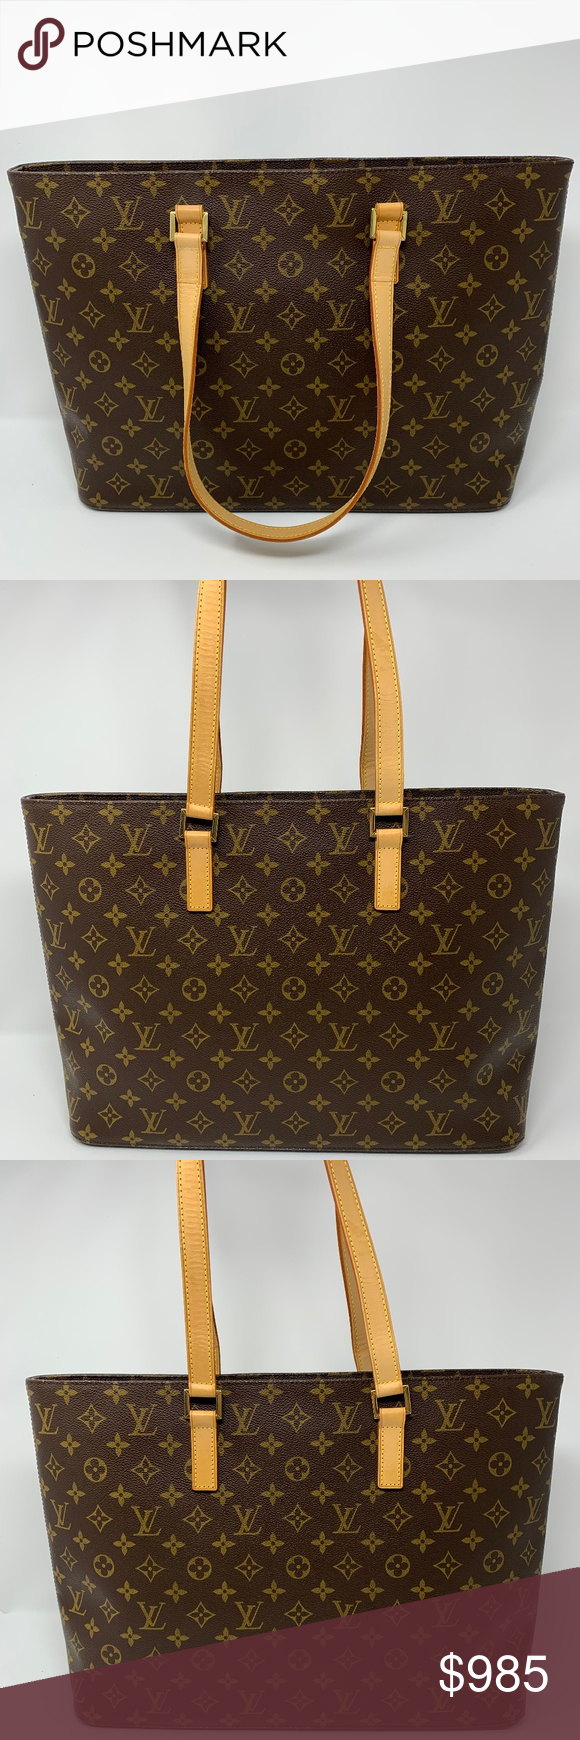 100% Auth Louis Vuitton Luco Tote Bag Pre-owned. Overall Condition is  slightly used in excellent condition looks like new. No rips or tears. c6f5a3ee7fb84